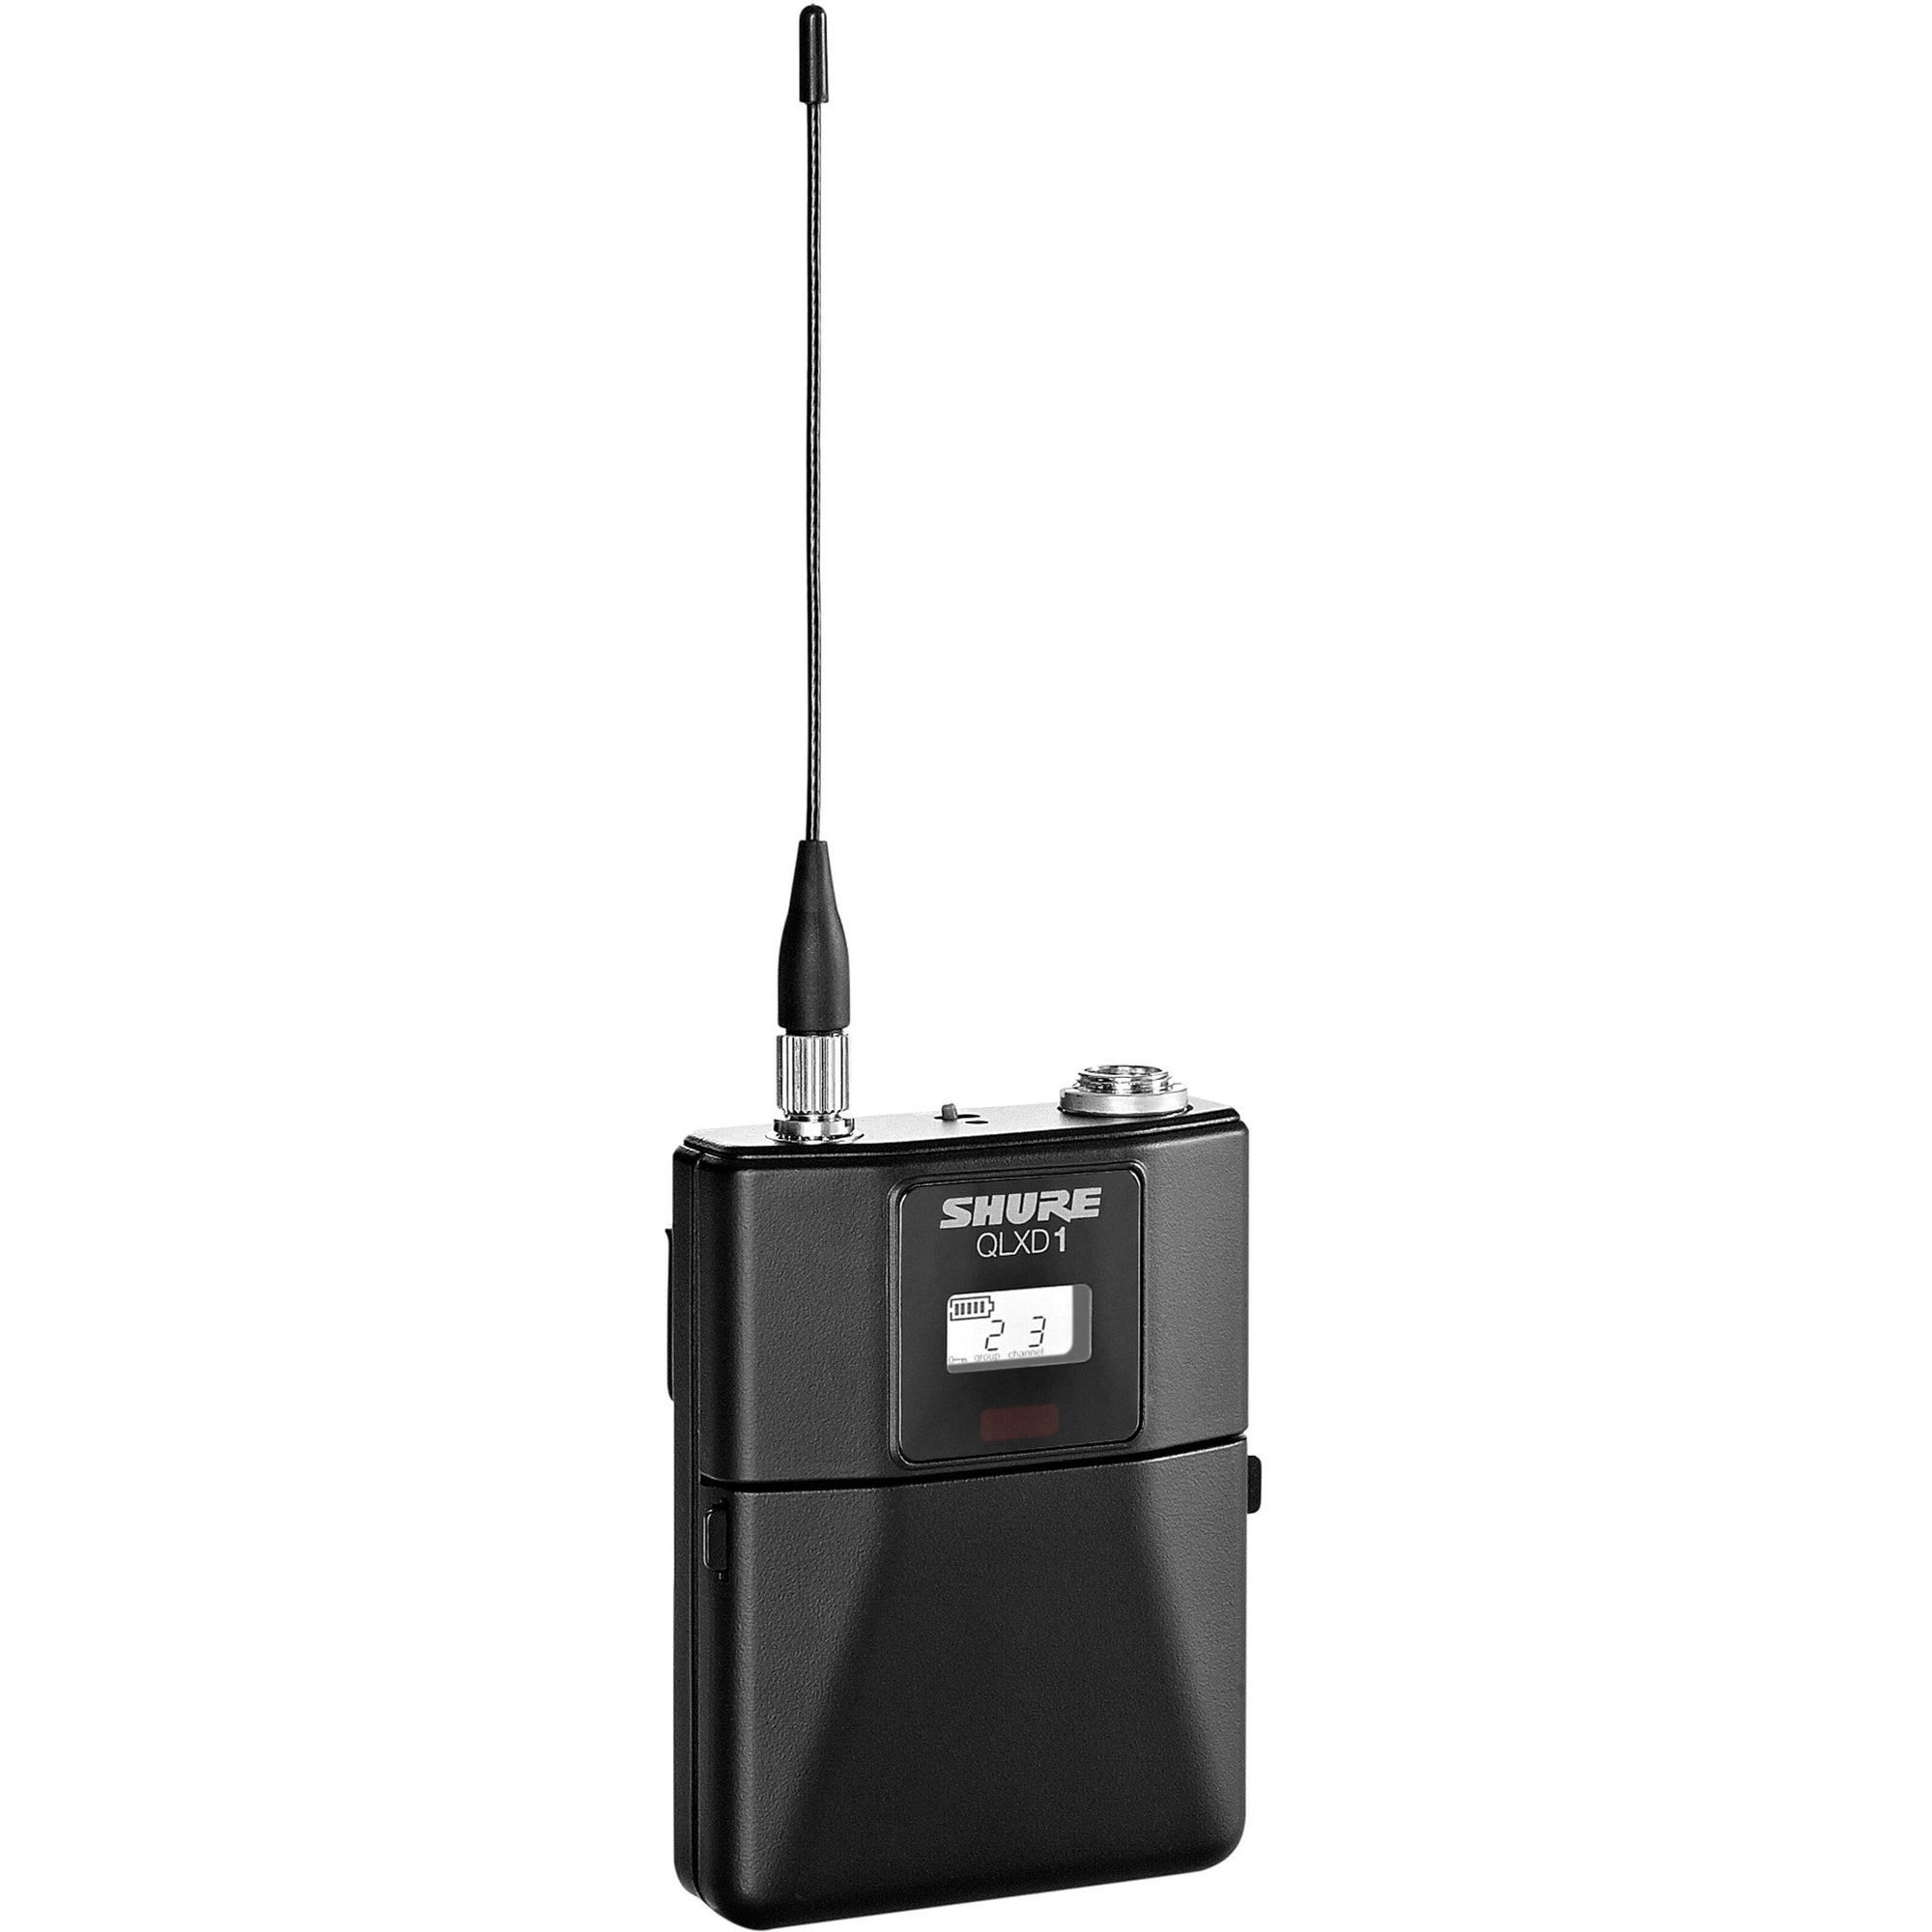 Shure QLXD1484 Wireless System with WL184 Lavalier Microphone, Band J50A (572 - 608 MHz)